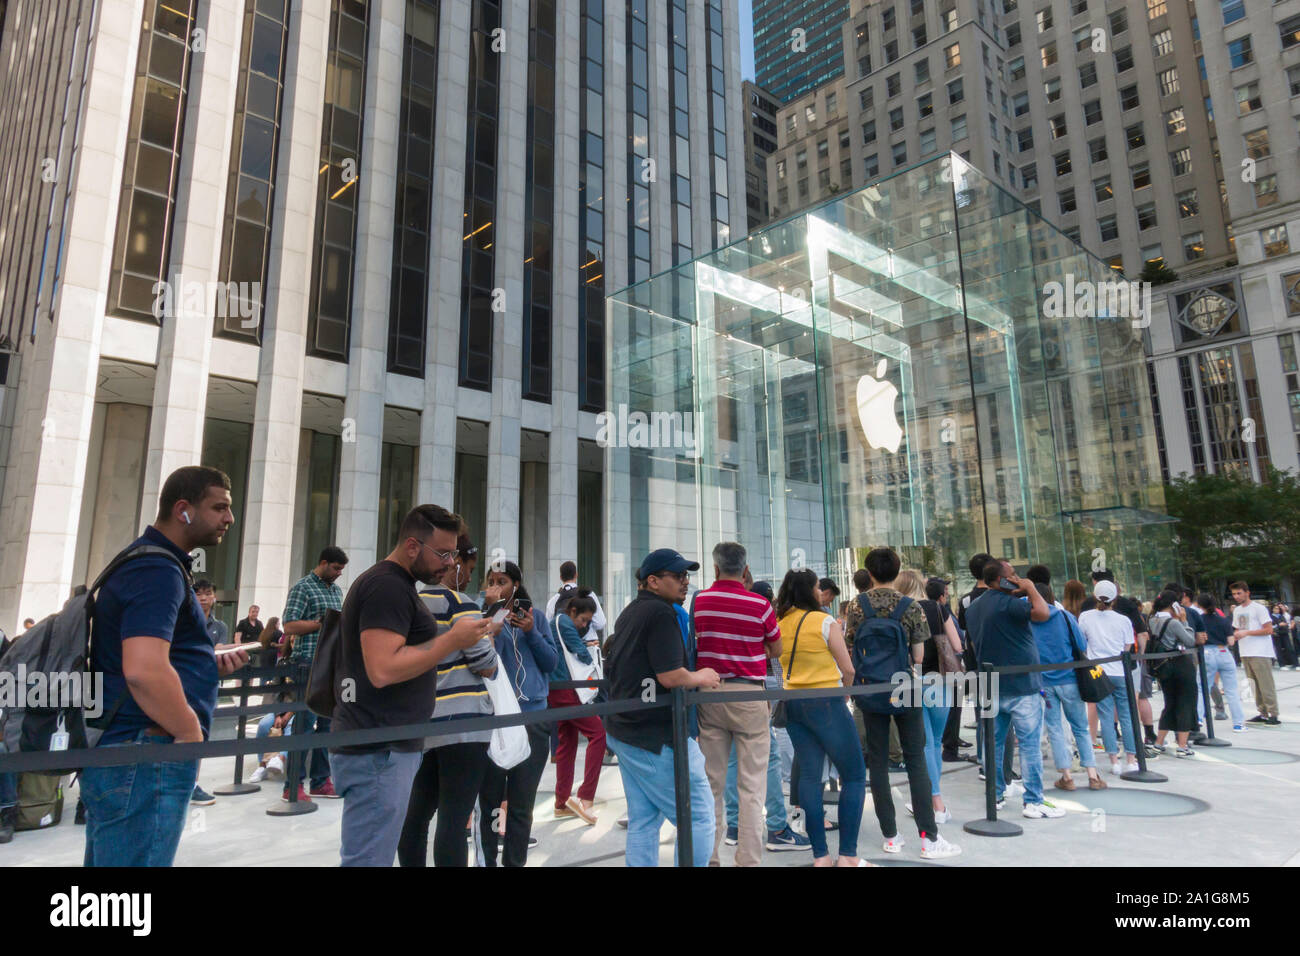 Apple Computer Store, Fifth  Avenue,  People in Line to purchase Latest iPhone Model, NYC Stock Photo